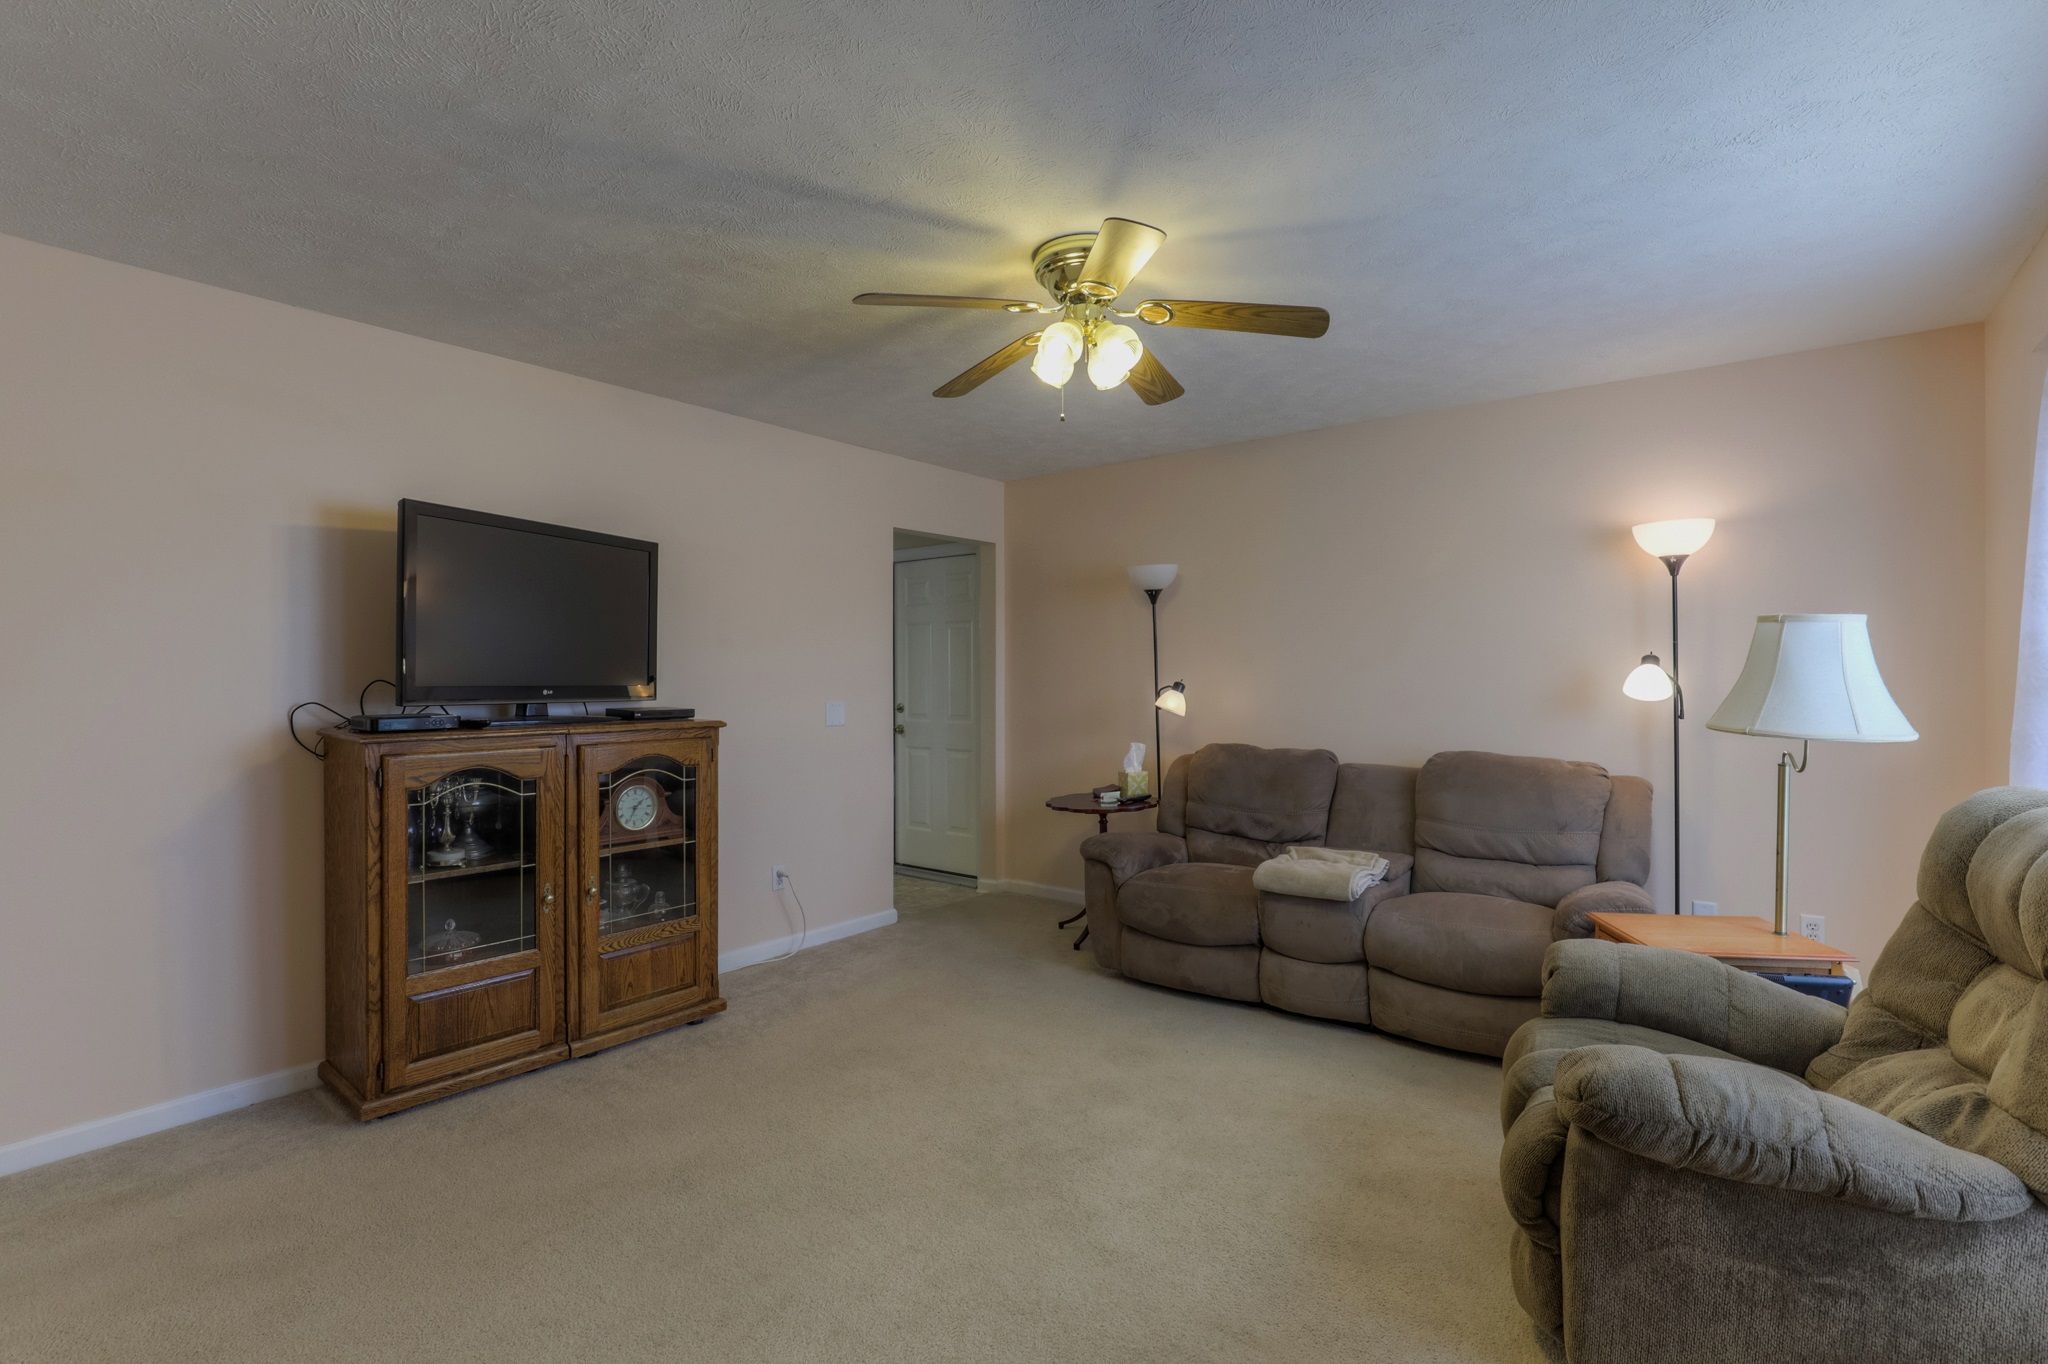 143 Silver Leaf Cir, Dickson TN(LOW-RES) (1 of 25)